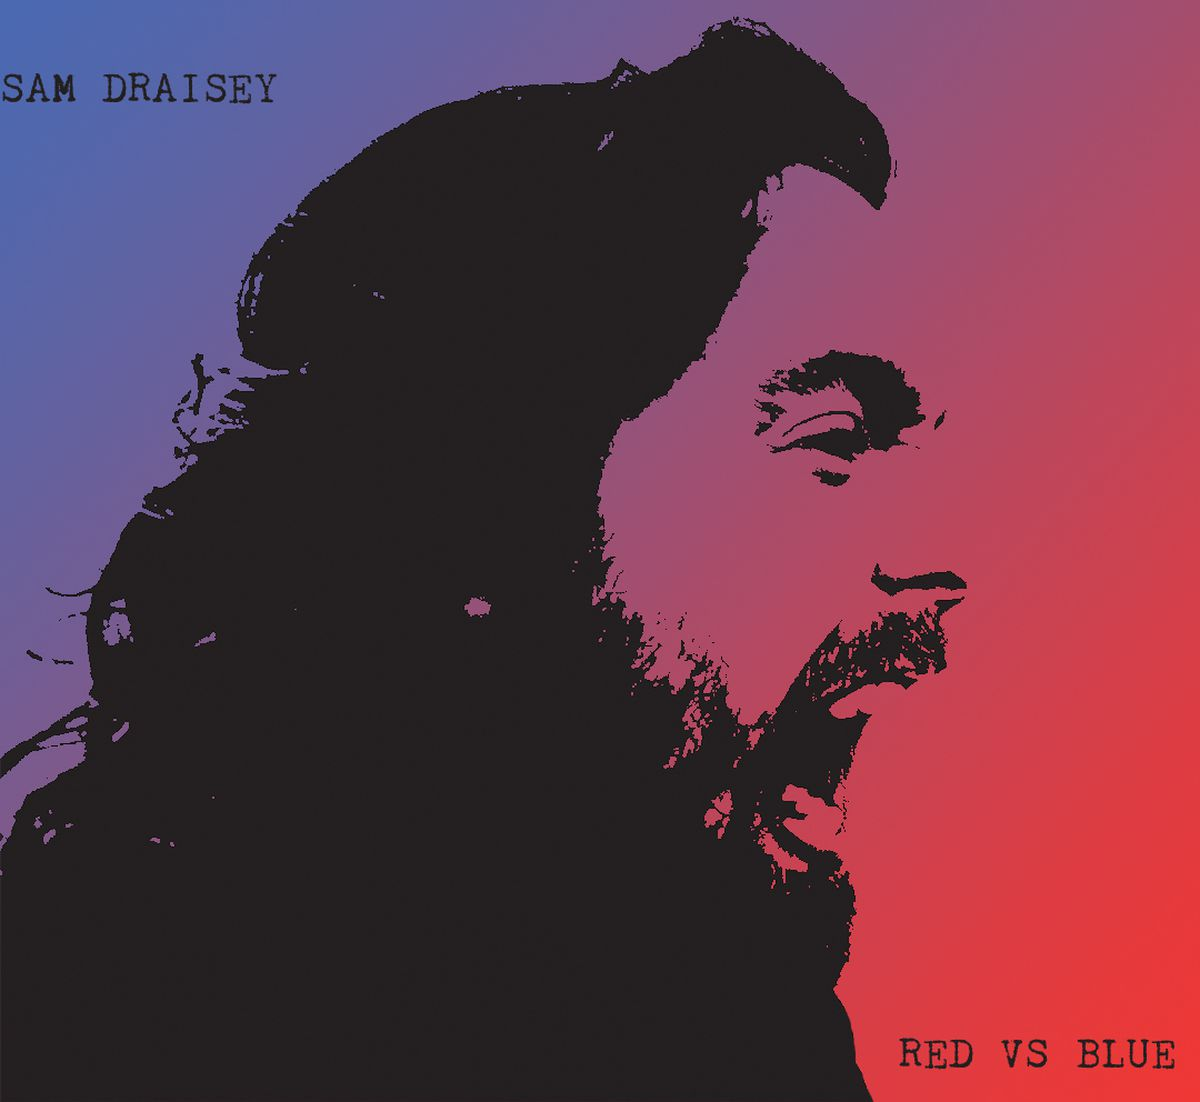 Red vs Blue, which is released on May 1, showcases 18 new diverse songs